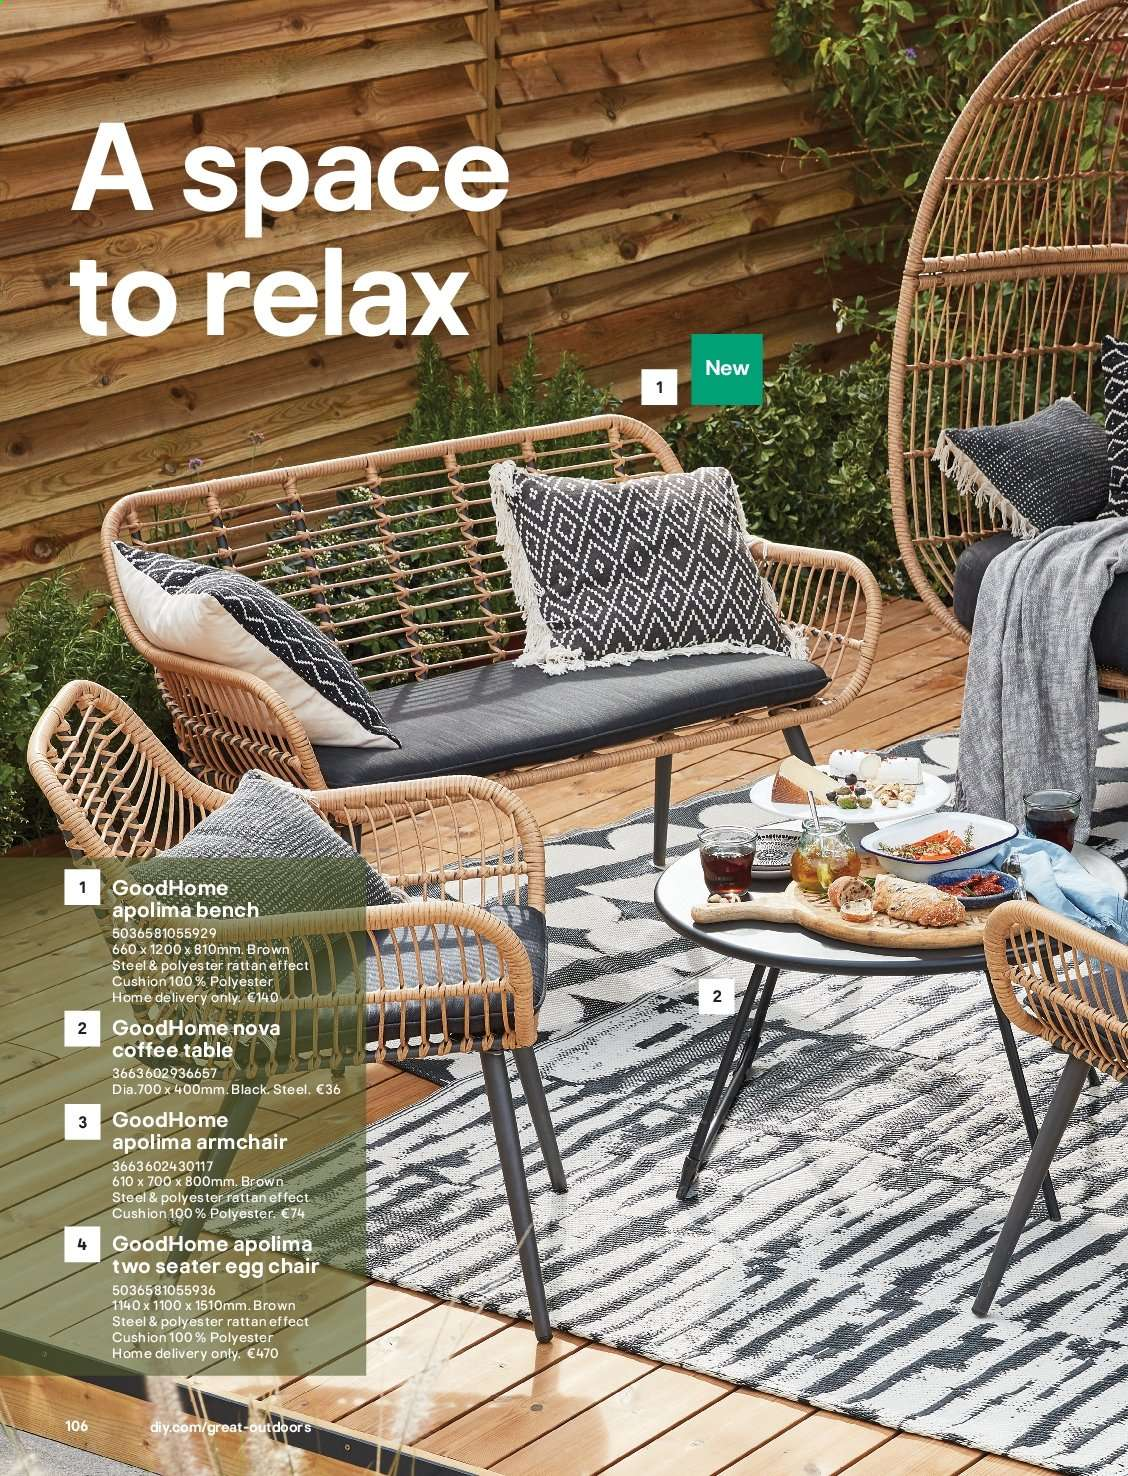 B&Q offer  - Sales products - arm chair, Bench, coffee table, cushion, table, chair. Page 106.